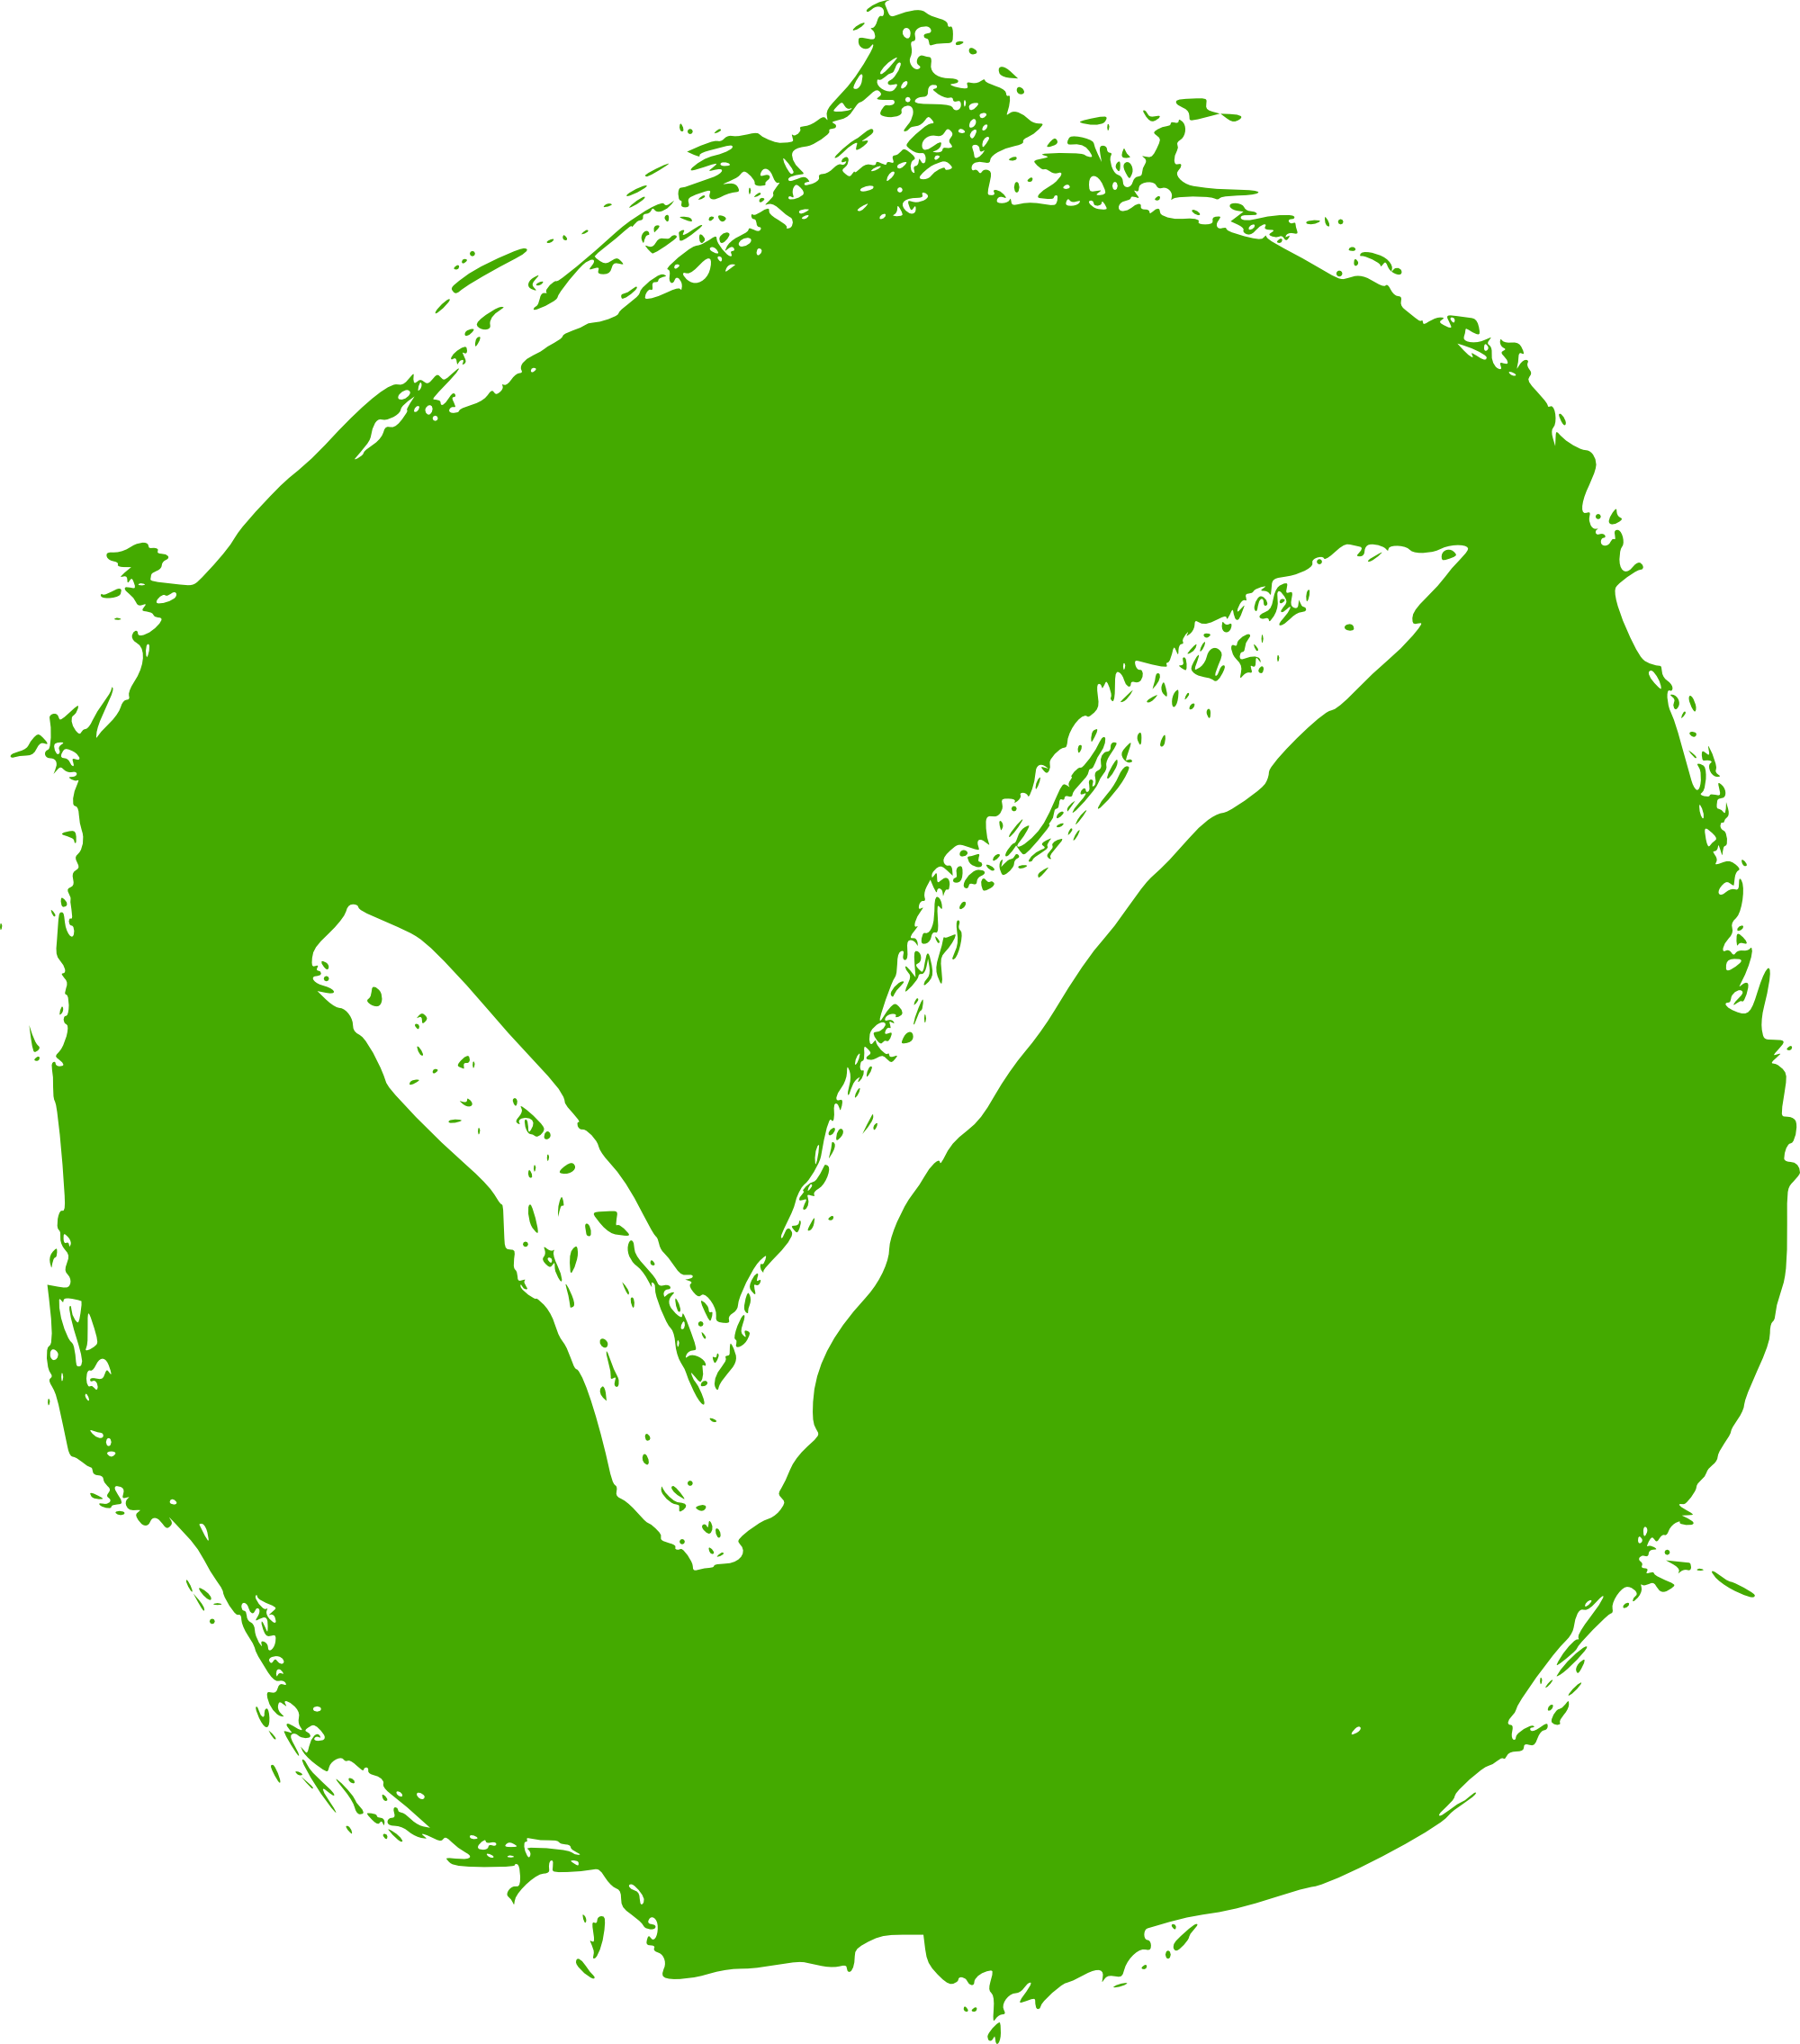 Yes no icon png. Grunge transparent onlygfx